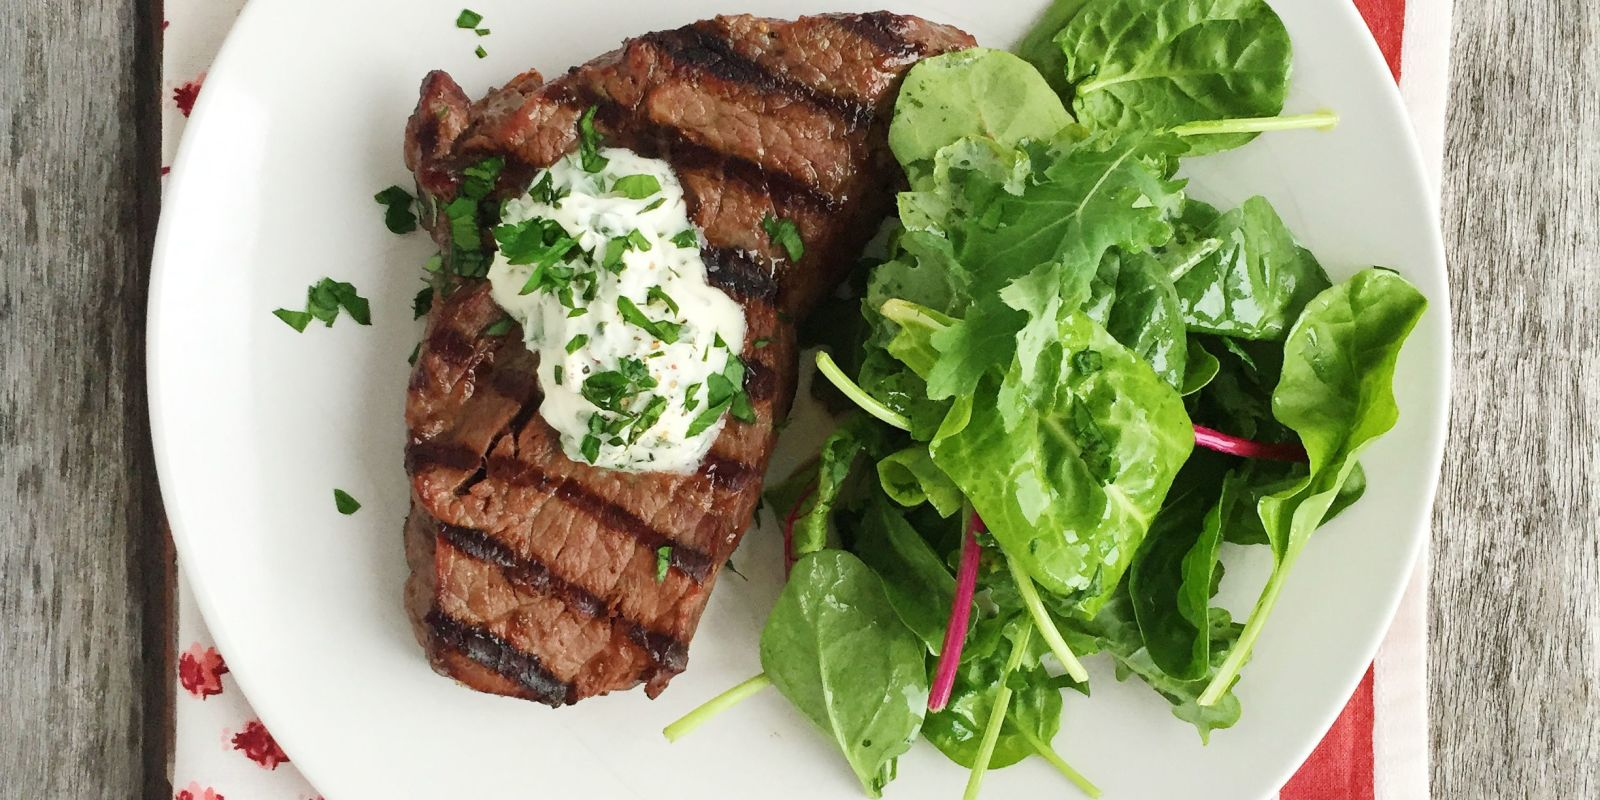 Best Grilled Sirloin Recipe - How to Make Grilled Sirloin